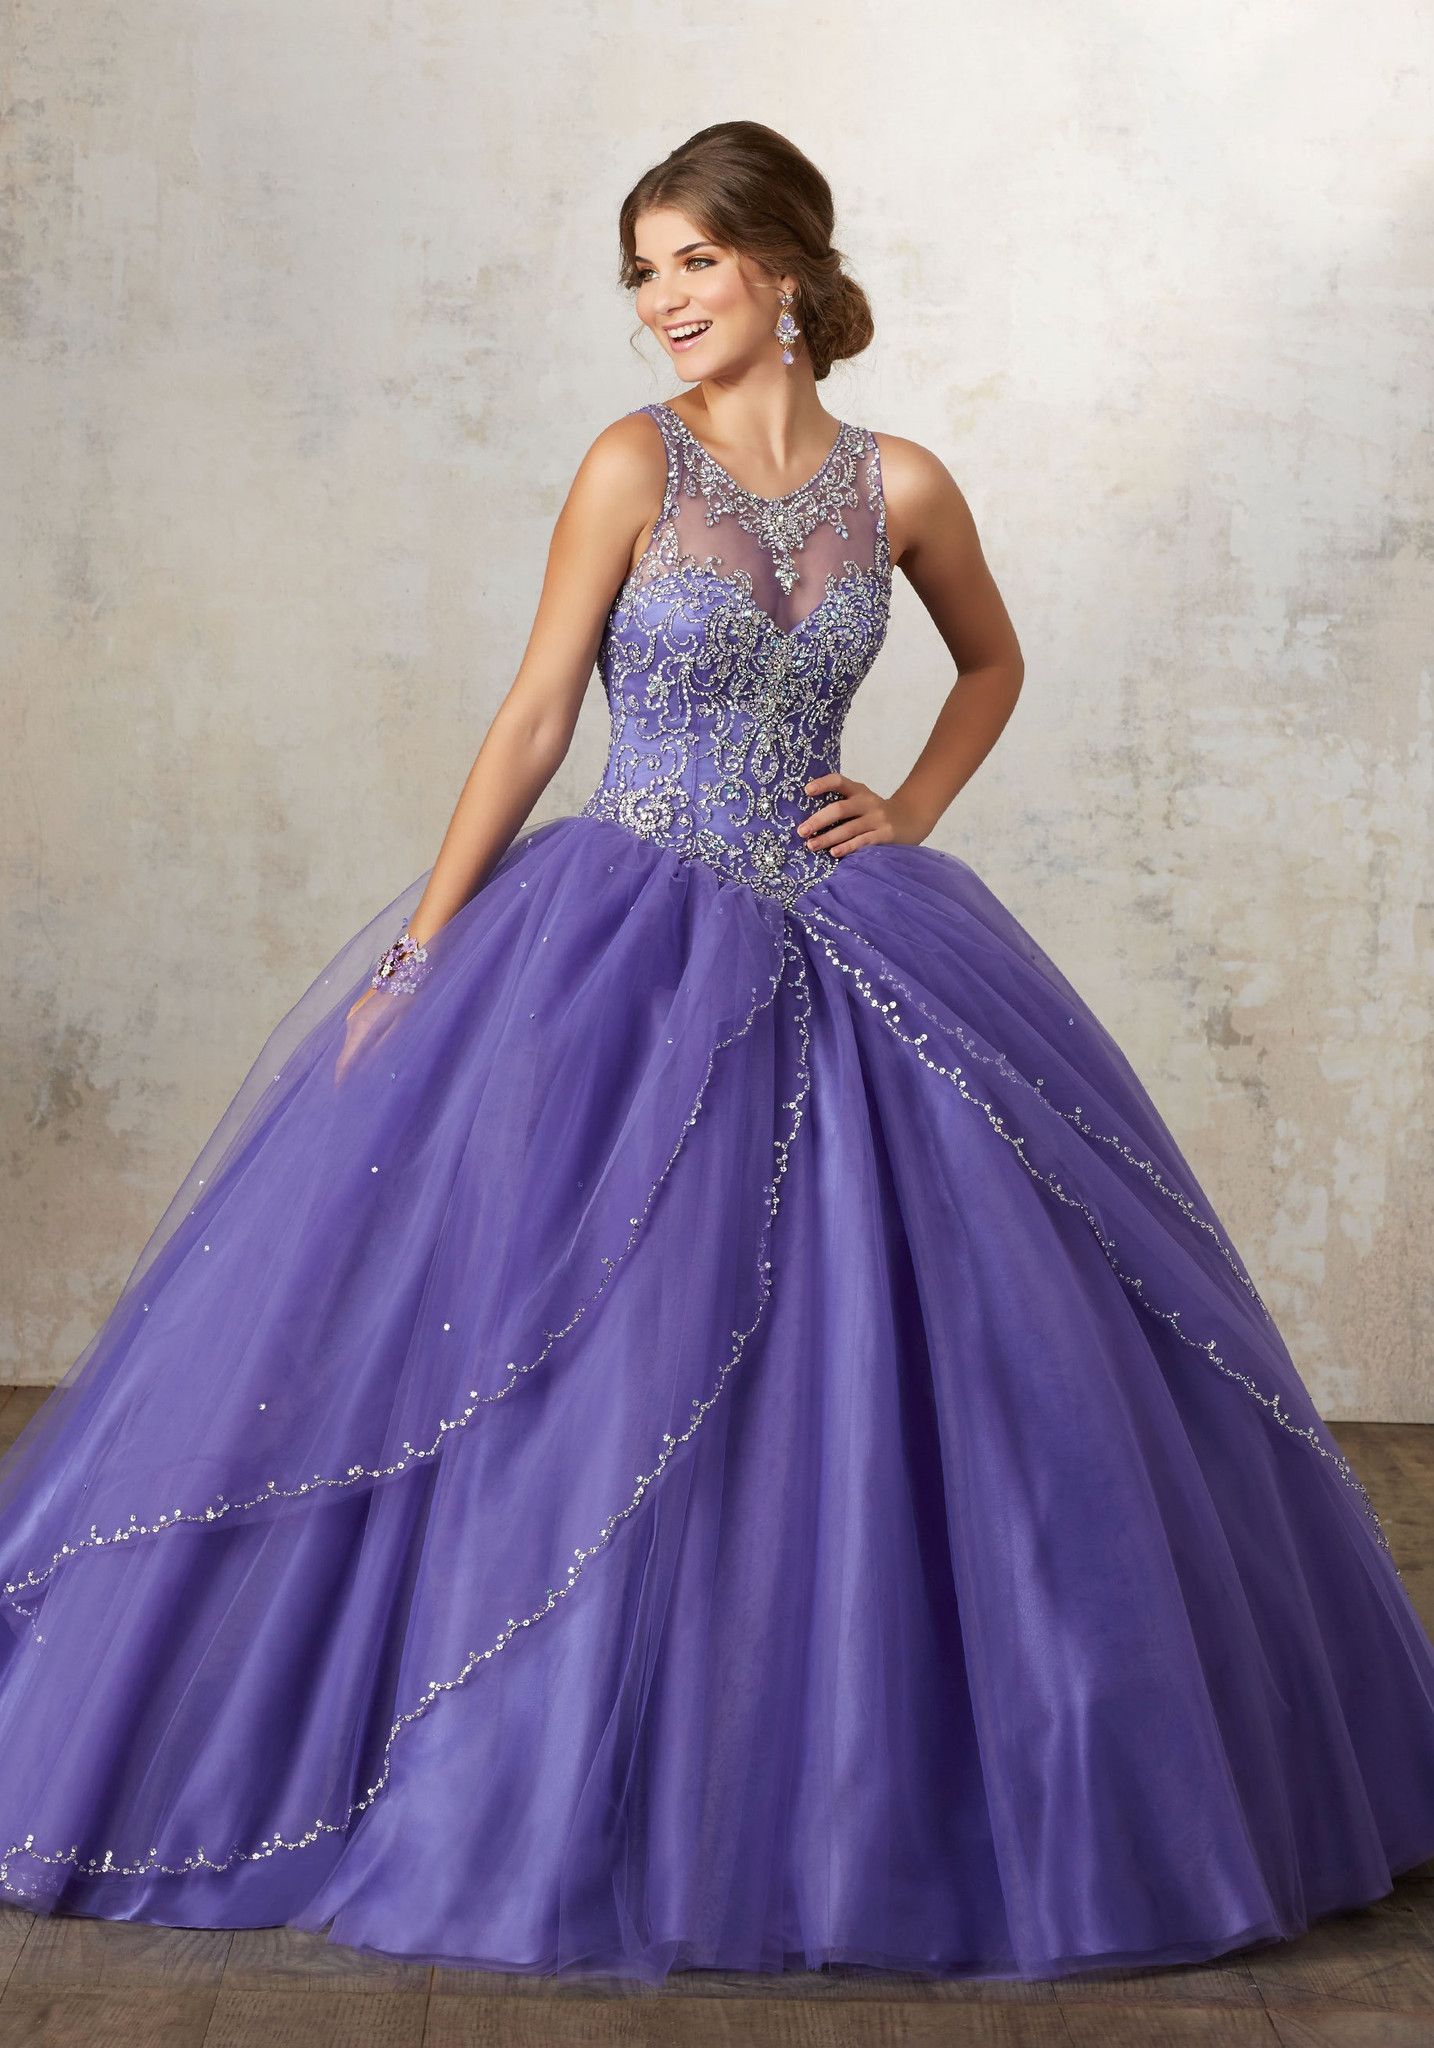 Mori Lee Quinceanera Dress 89127 | Mori lee, Quinceanera ideas and Gowns